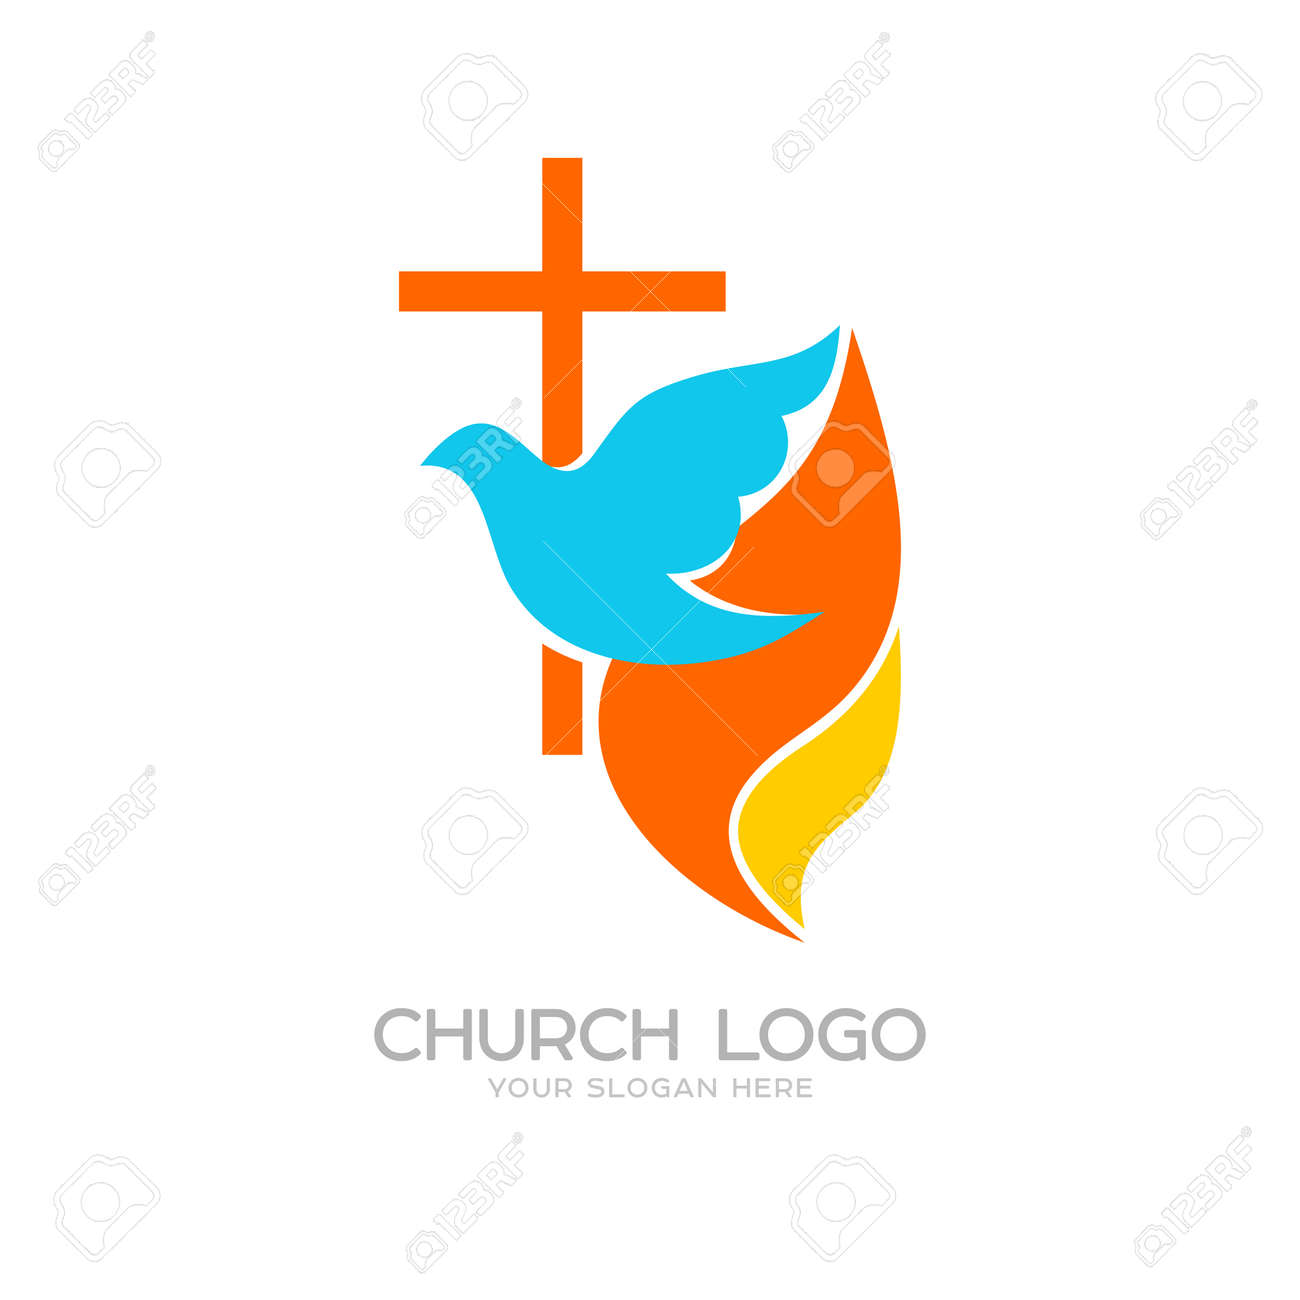 Church logo cristian symbols the cross of jesus the dove and church logo cristian symbols the cross of jesus the dove and the flame altavistaventures Choice Image